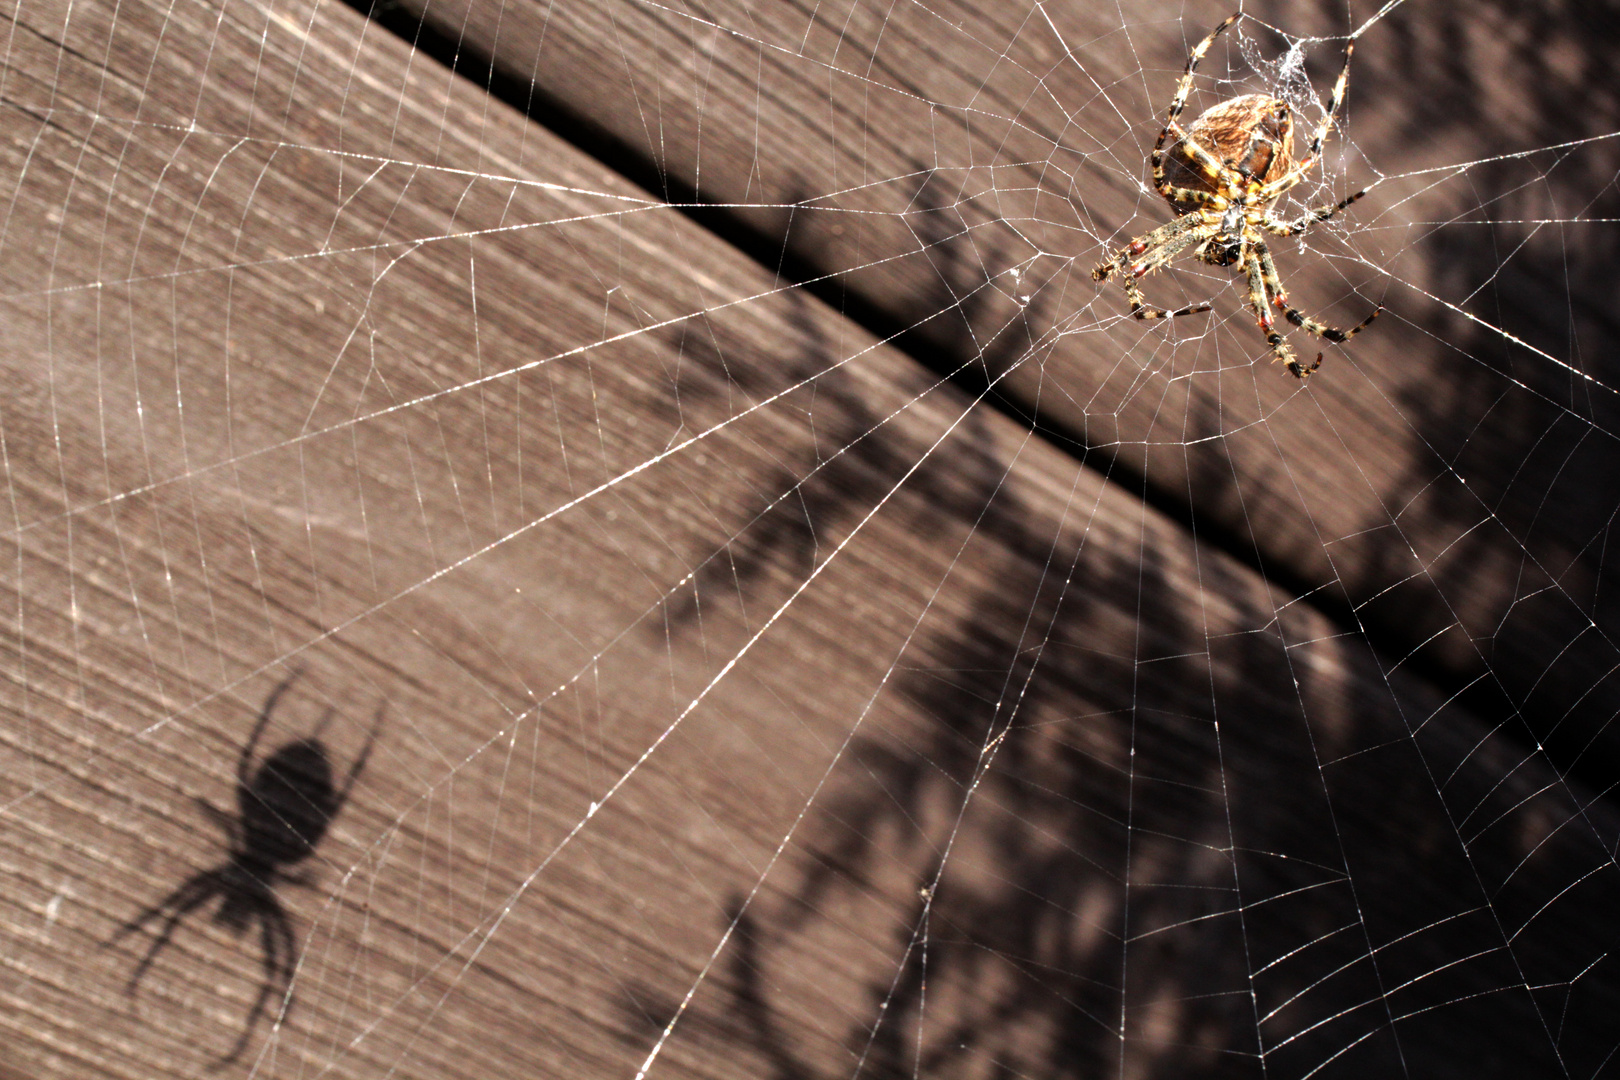 Shadow of the spider